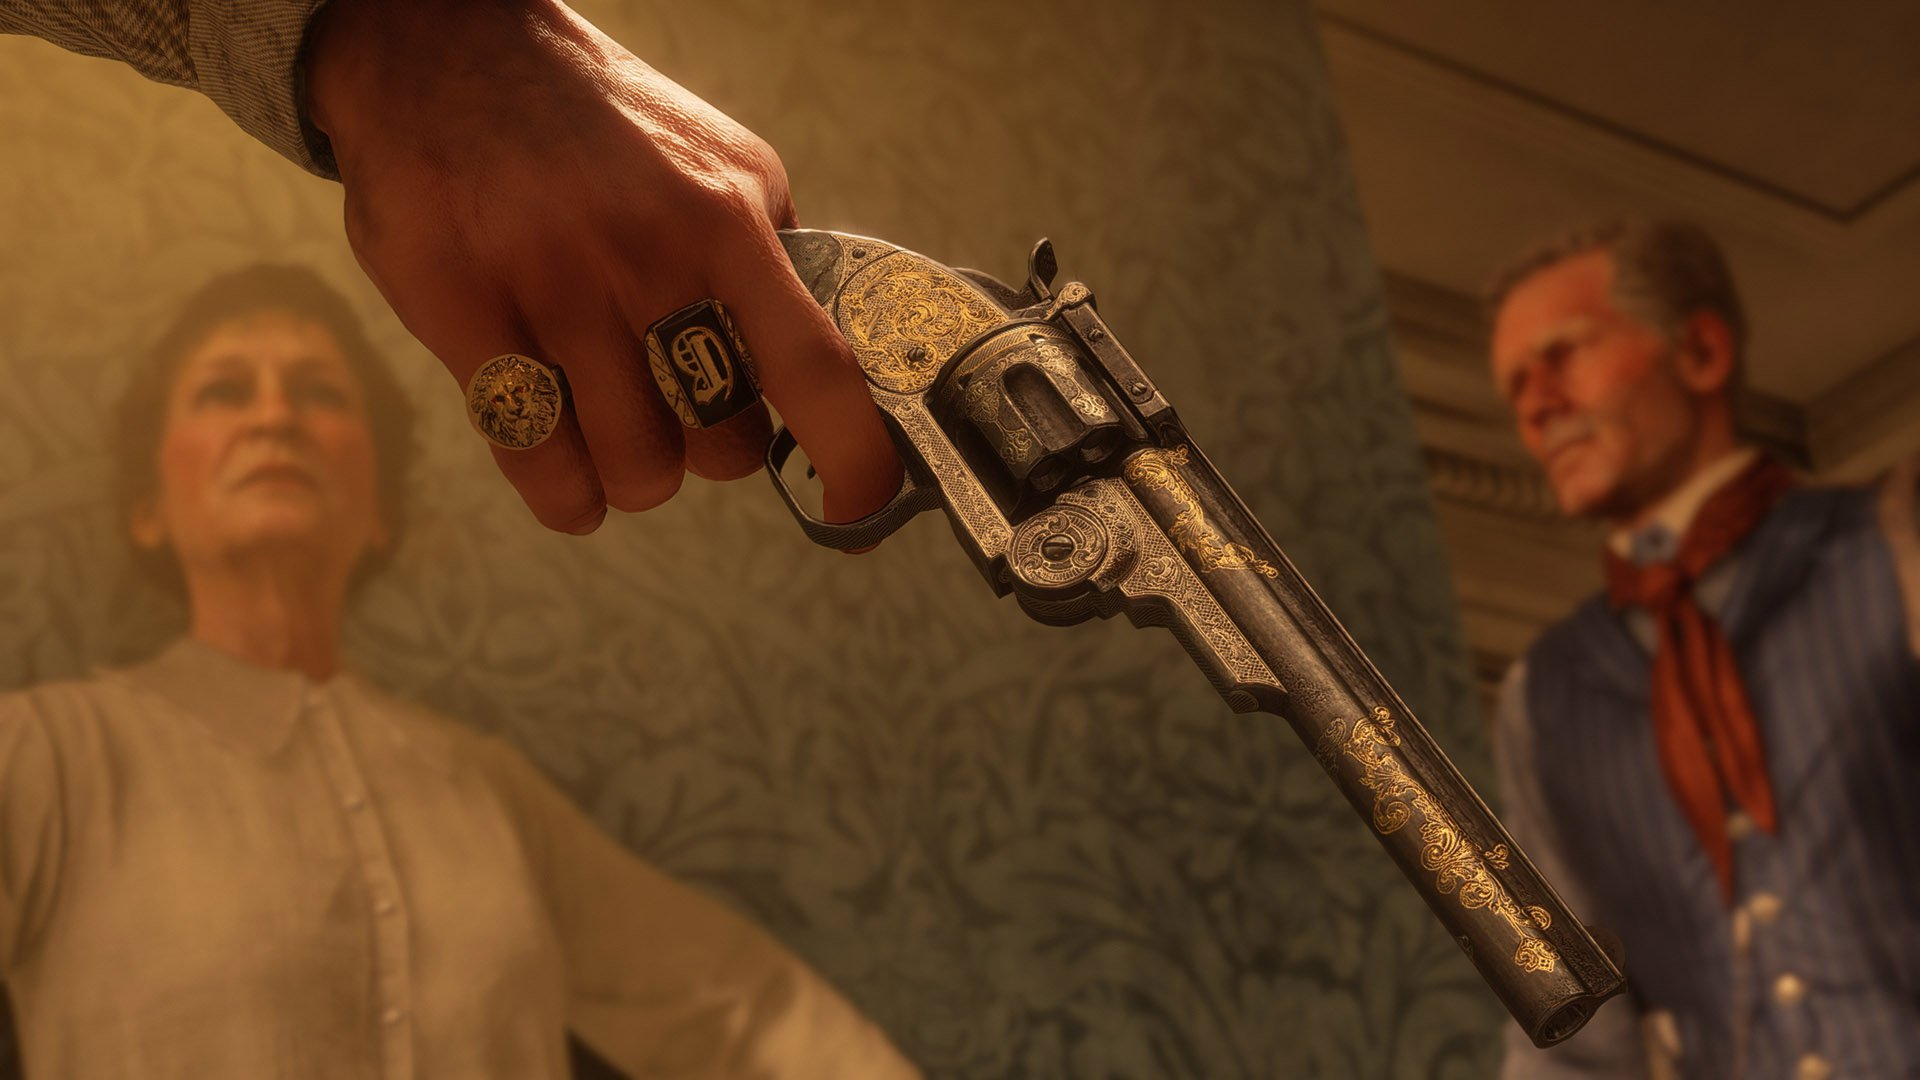 Red Dead Redemption 2 offers plenty of options for weapon customization.